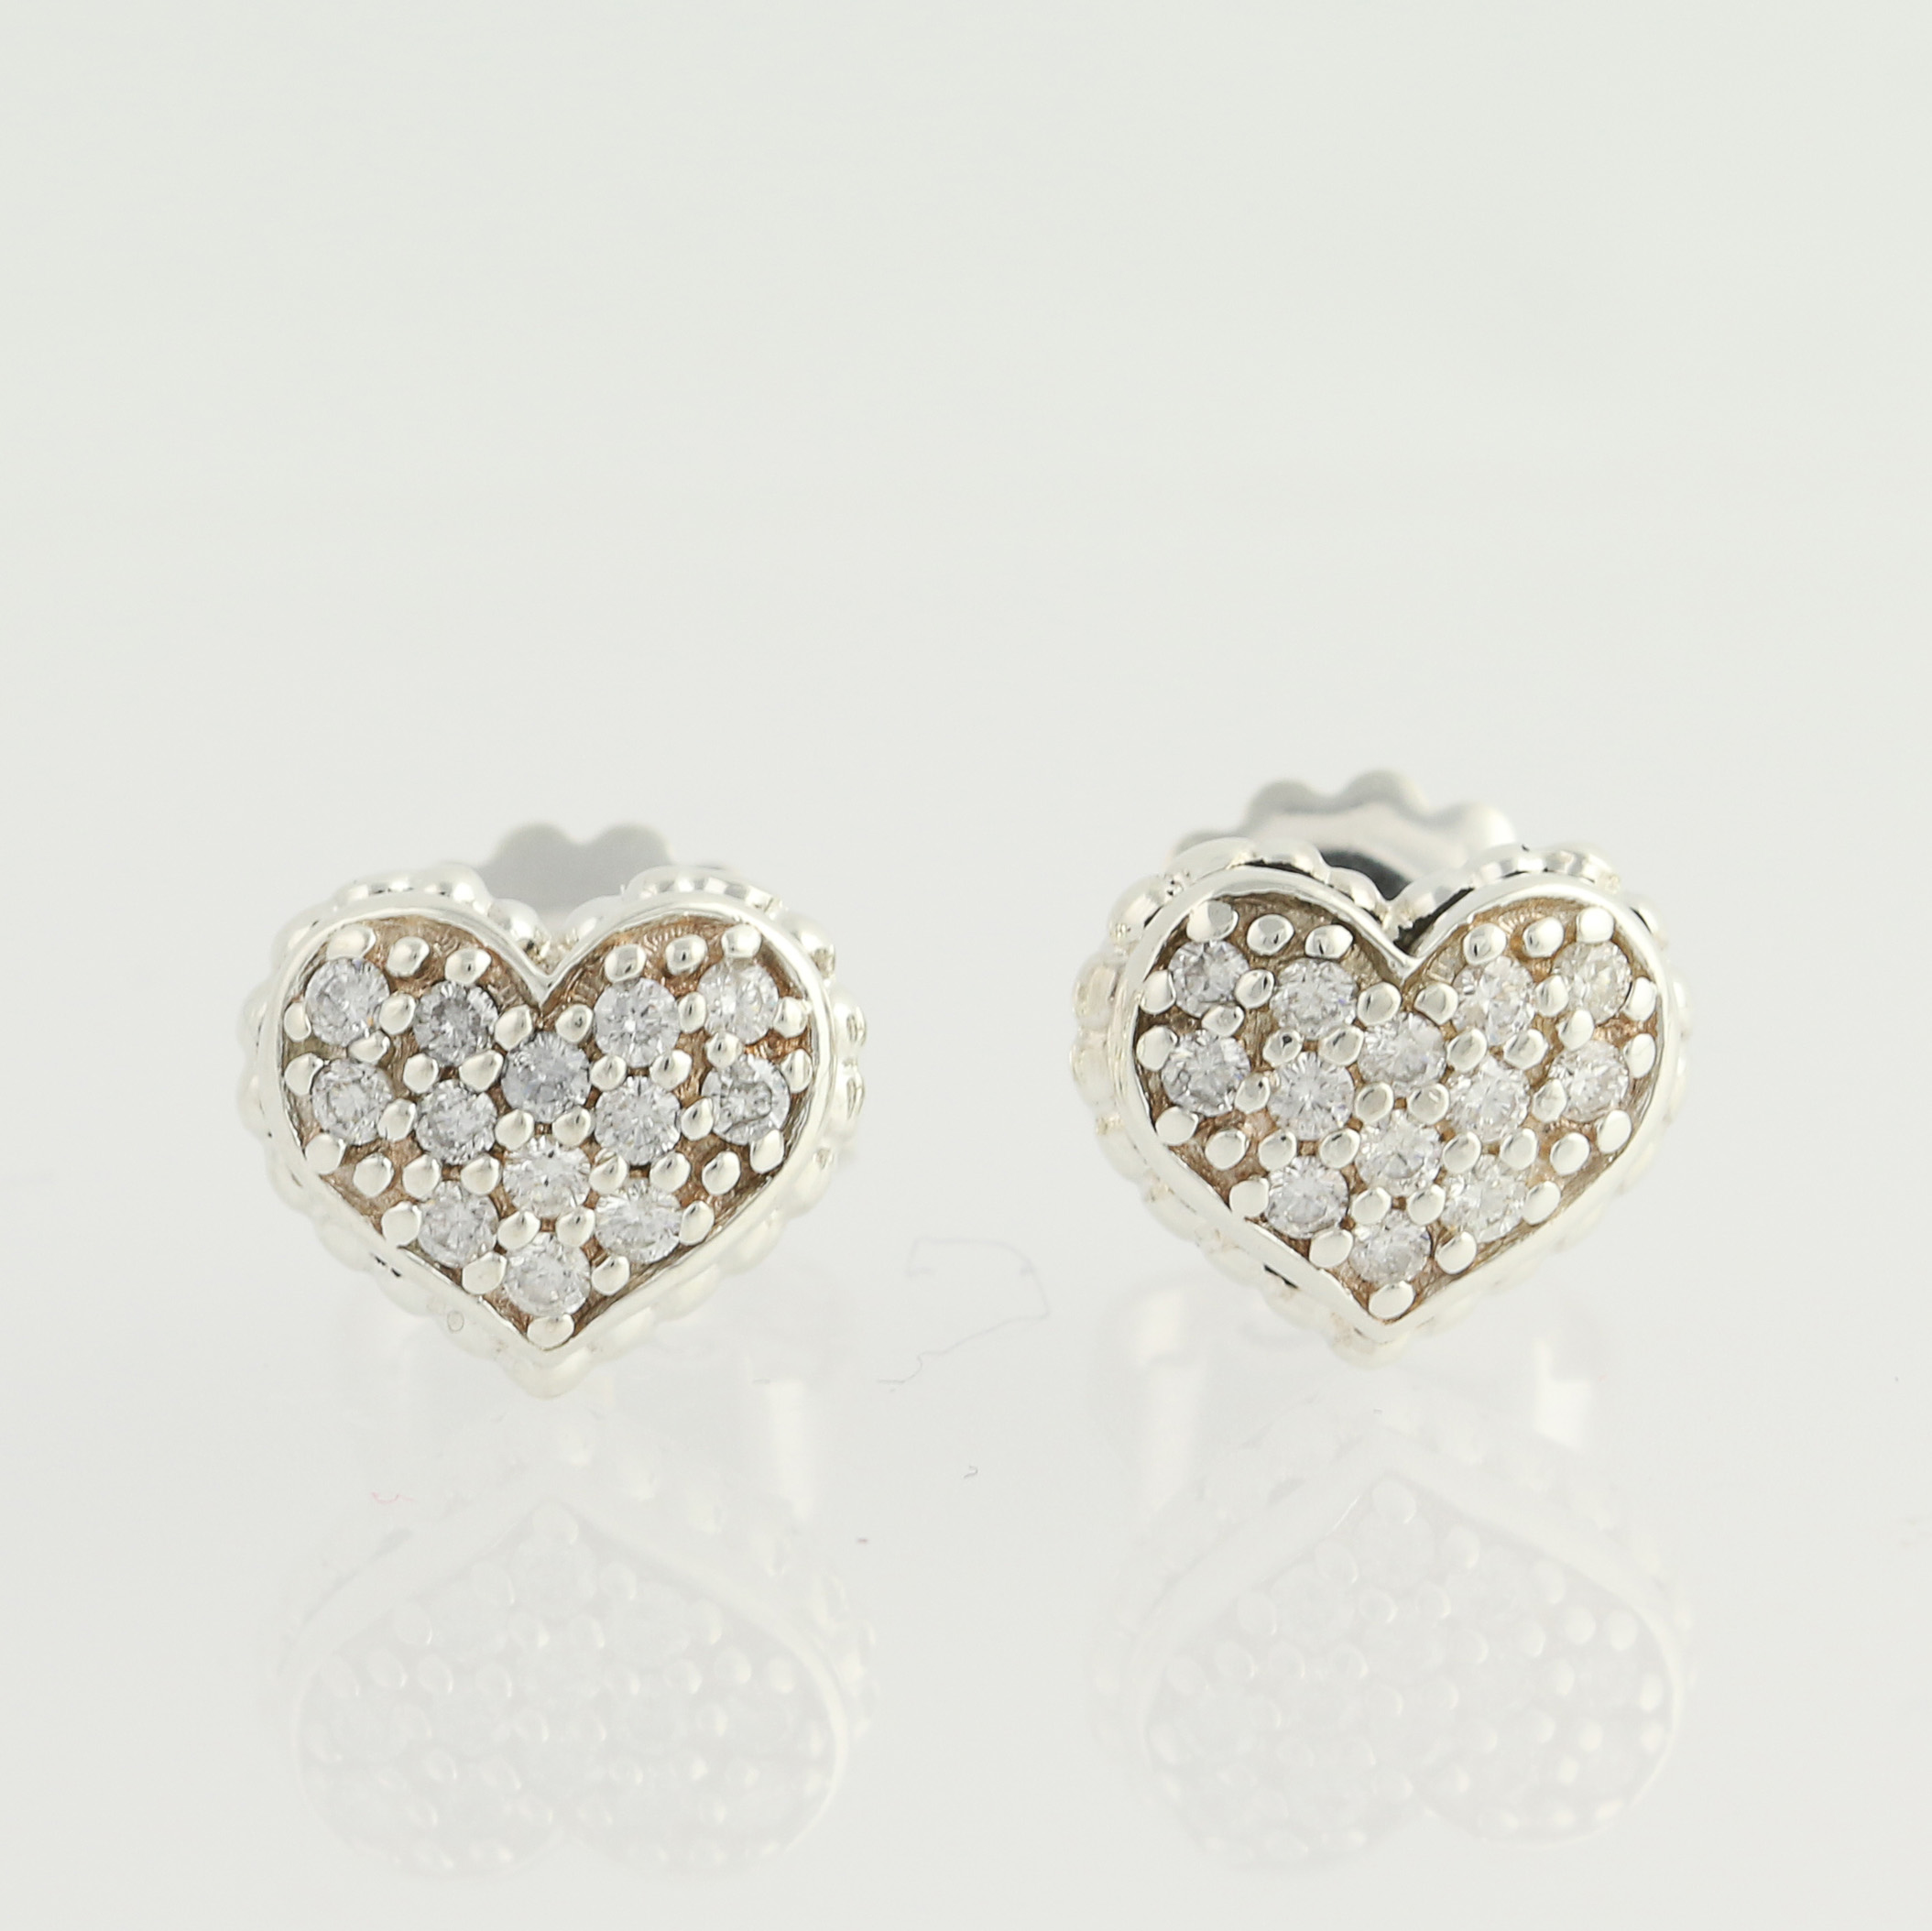 in hearts diamond platinum co earrings usm op of diamonds jewelry tiffany heart ed